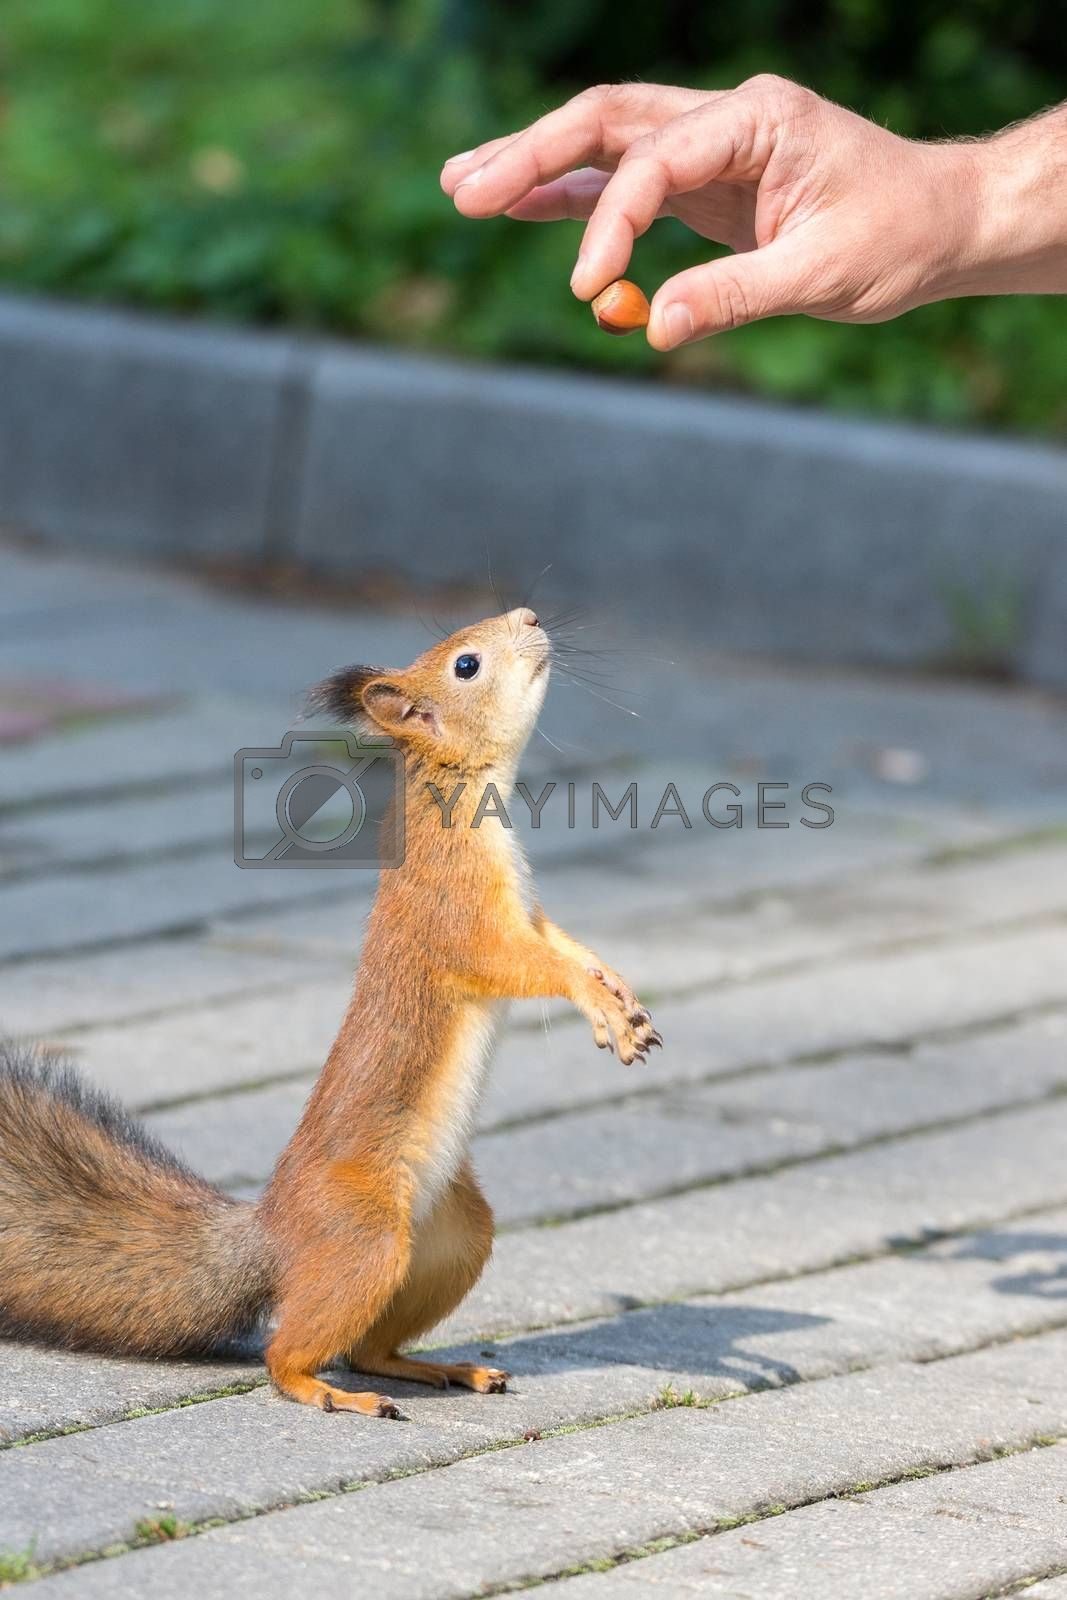 Squirrel asks for a nut on its hind legs